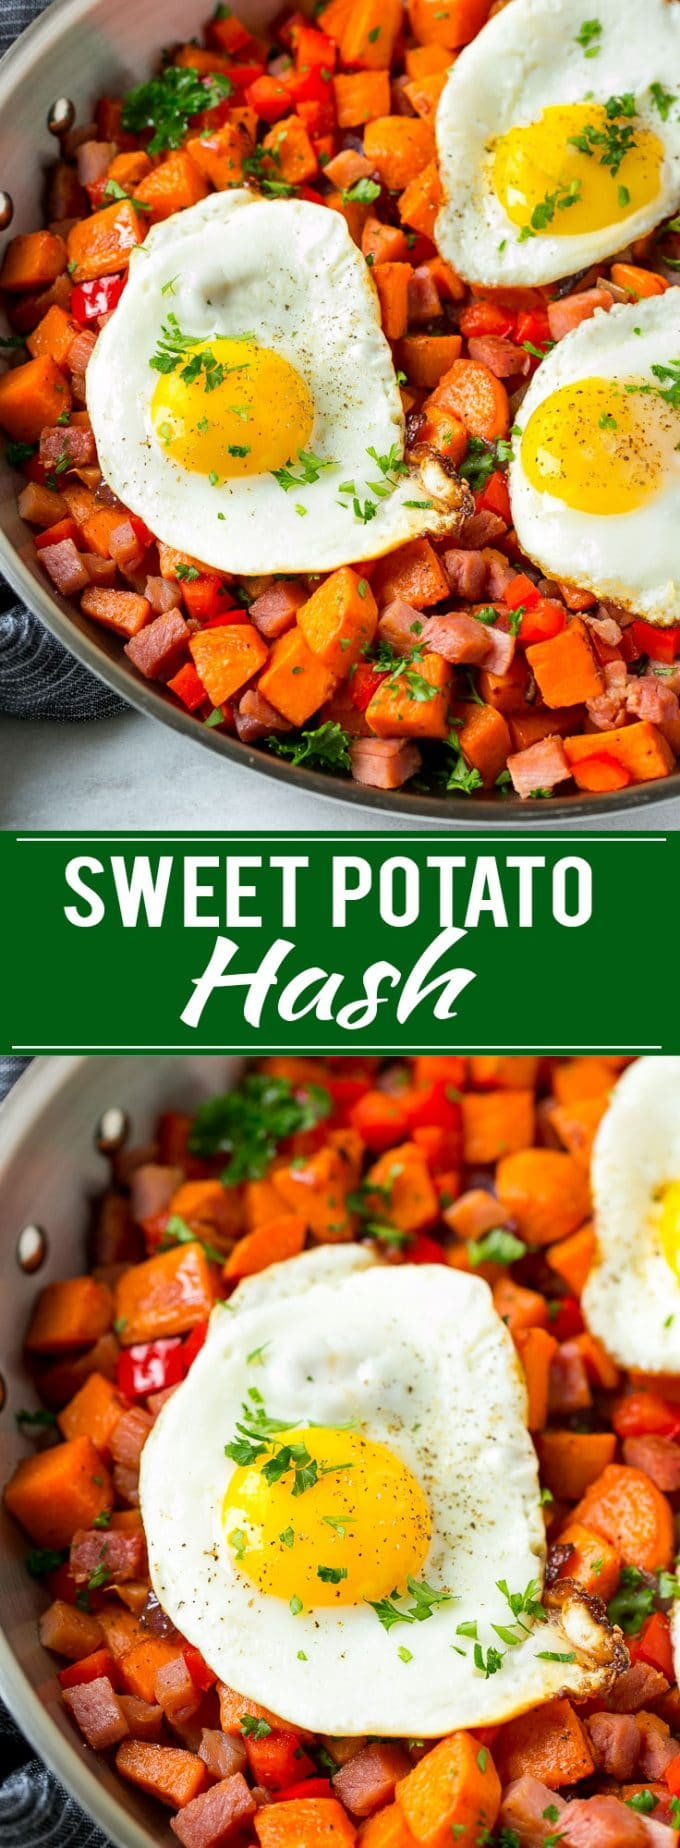 Sweet Potato Hash Recipe | Sweet Potato Recipe | Ham and Eggs | Breakfast Recipe | Easy Breakfast | Potato Hash